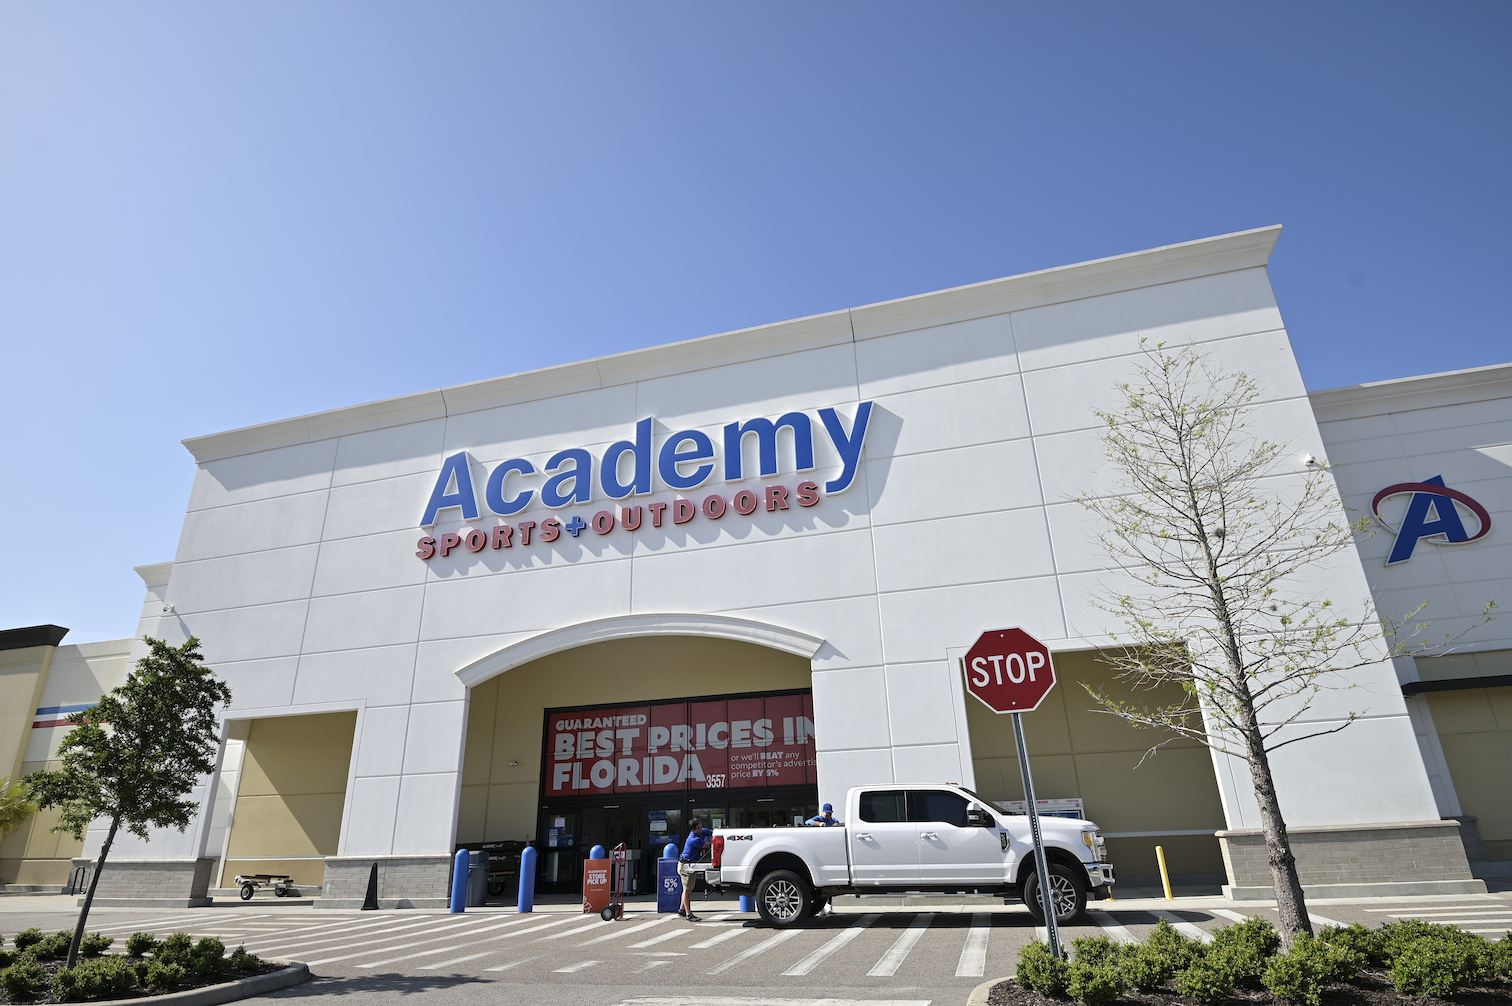 Academy Sports + Outdoors saw net sales jump 39.1 percent to a first-quarter record $1.6 billion, and expects 8 to 10 store to open in 2022.